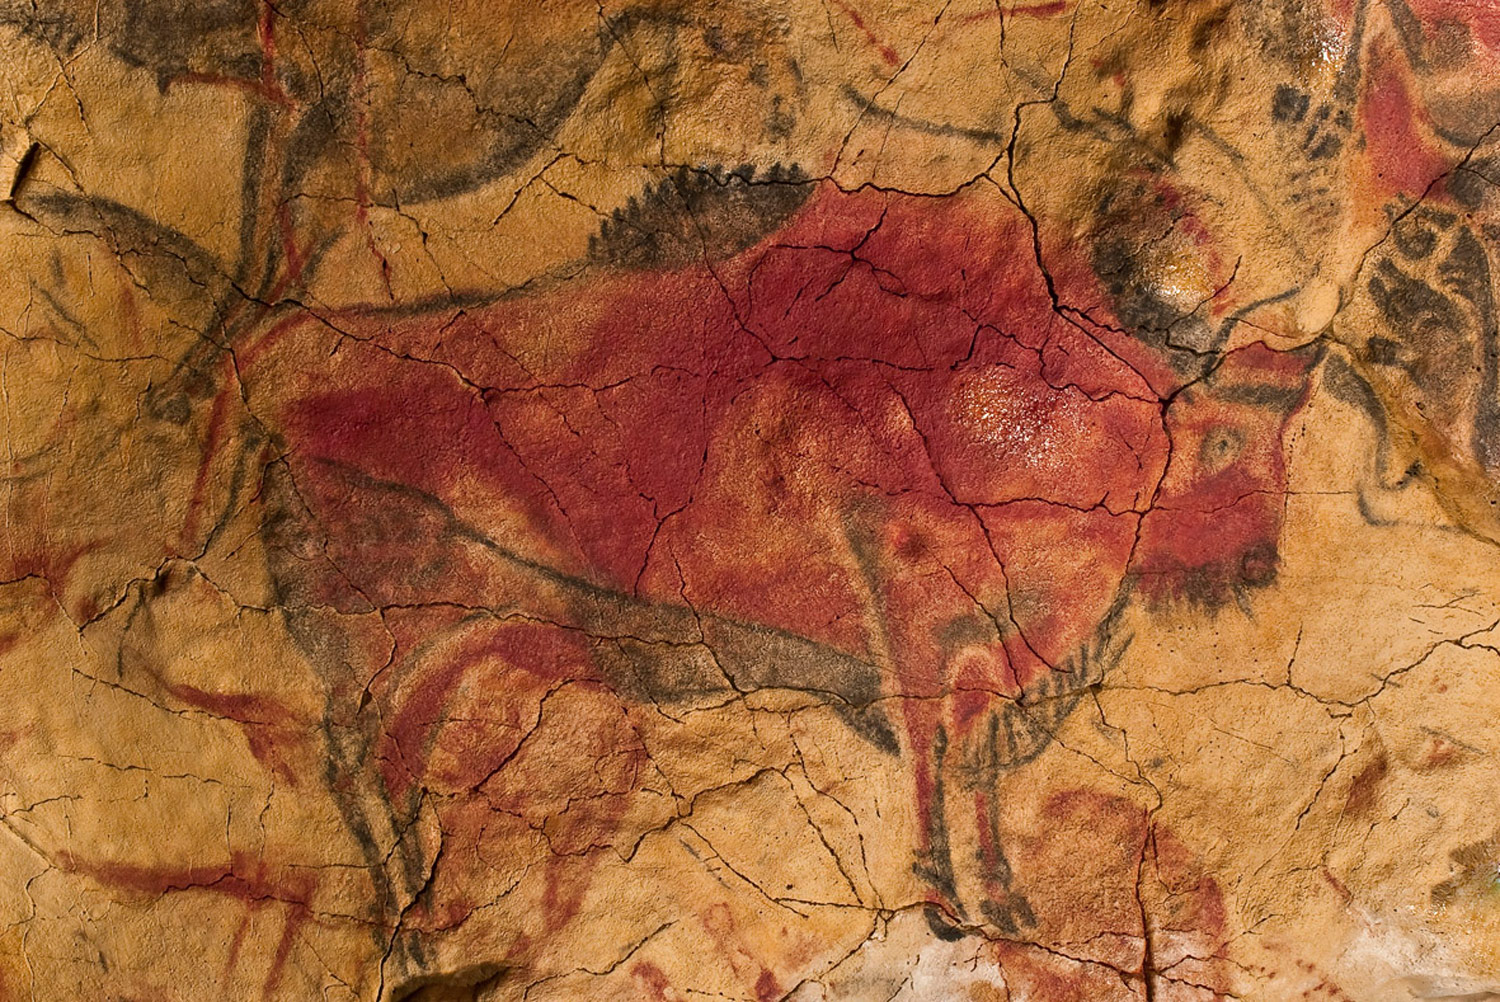 Image: Red bison on the cave walls of Altamira in Spain. Image credit: By Museo de Altamira y D. Rod...